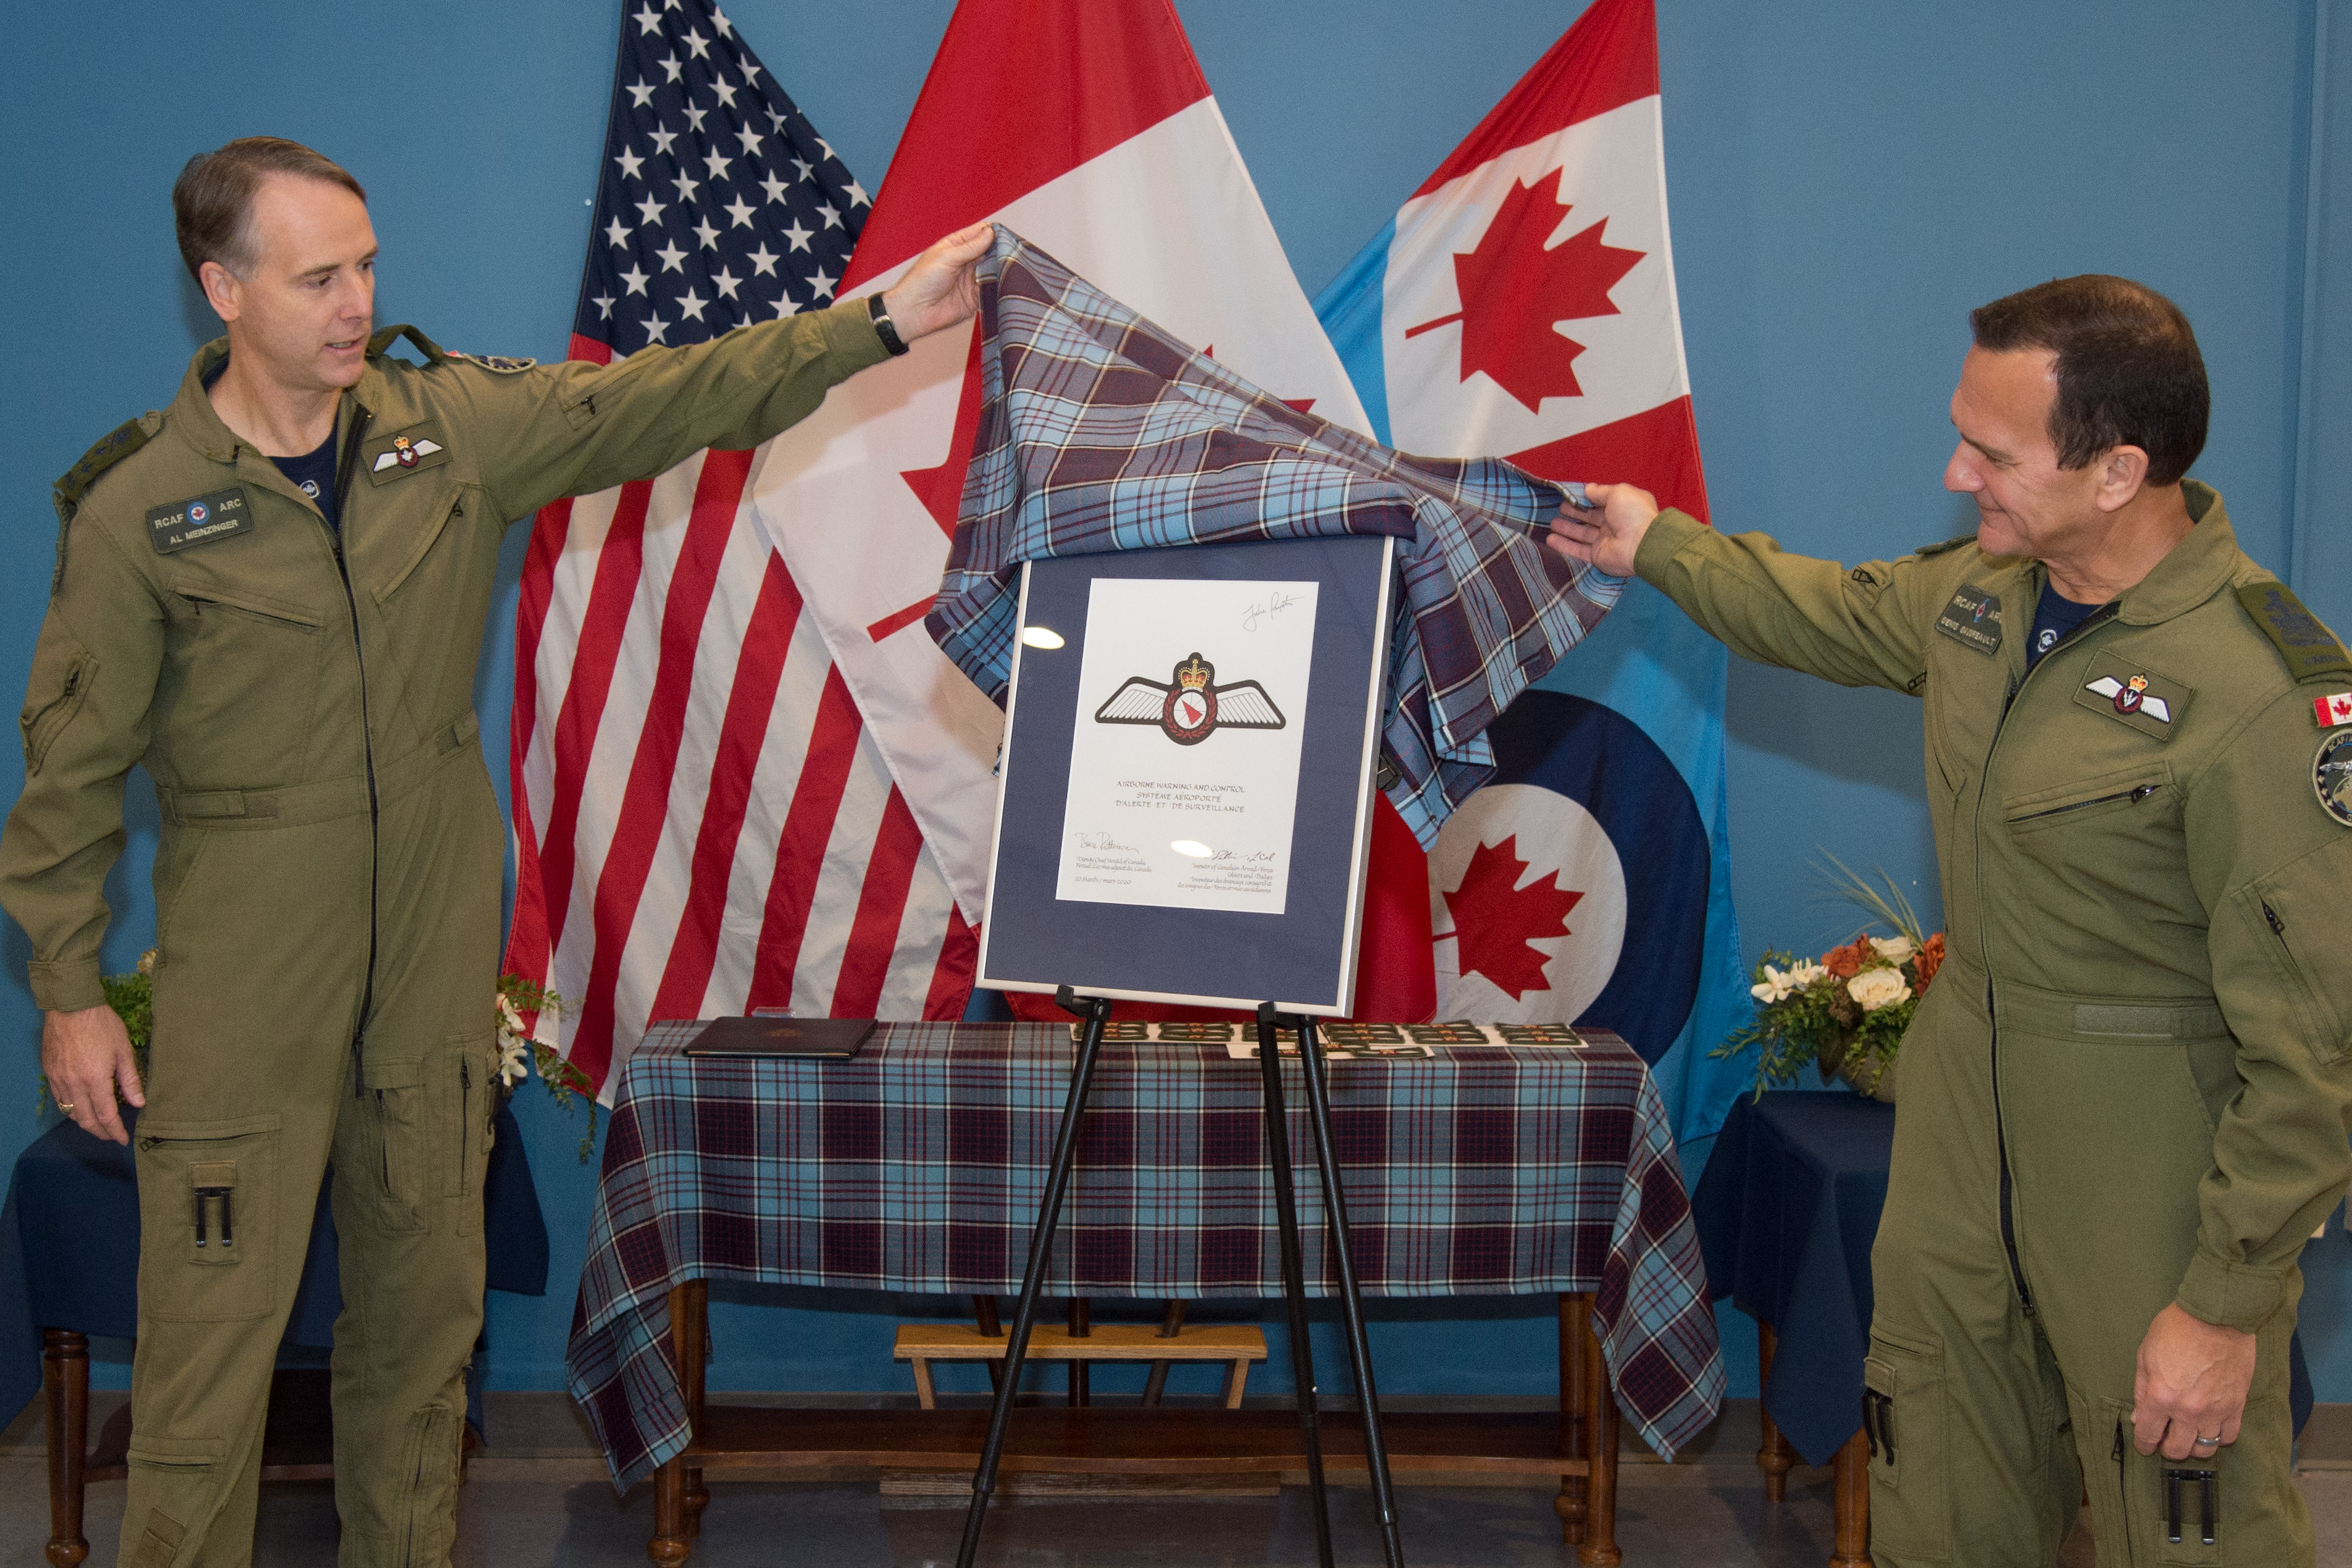 Two men in green flight suits unveil a badge on a stand. Behind them are three flags.